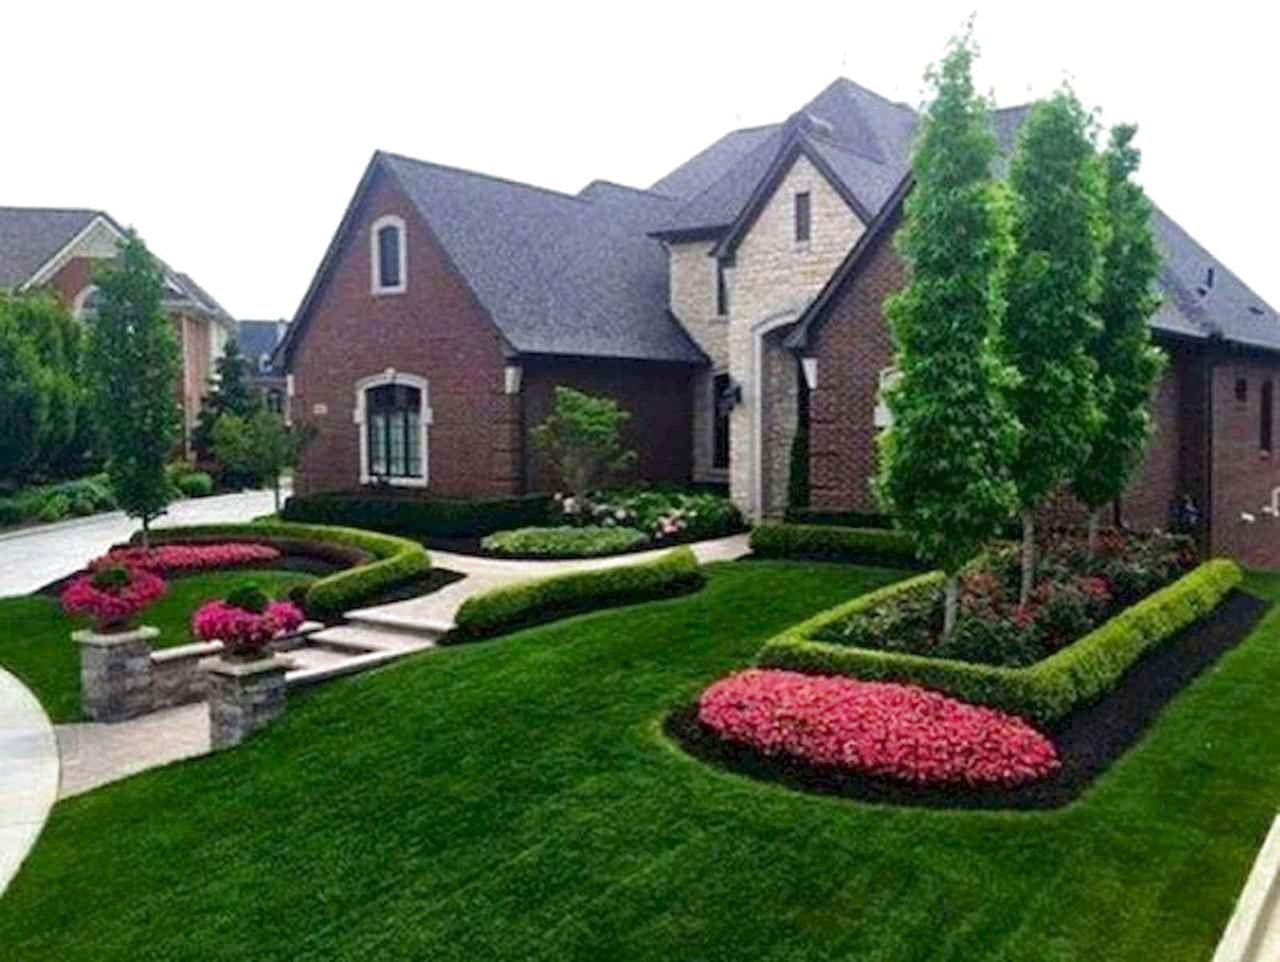 44 beautiful front yard garden landscaping design ideas on beautiful backyard garden design ideas and remodel create your extraordinary garden id=62906